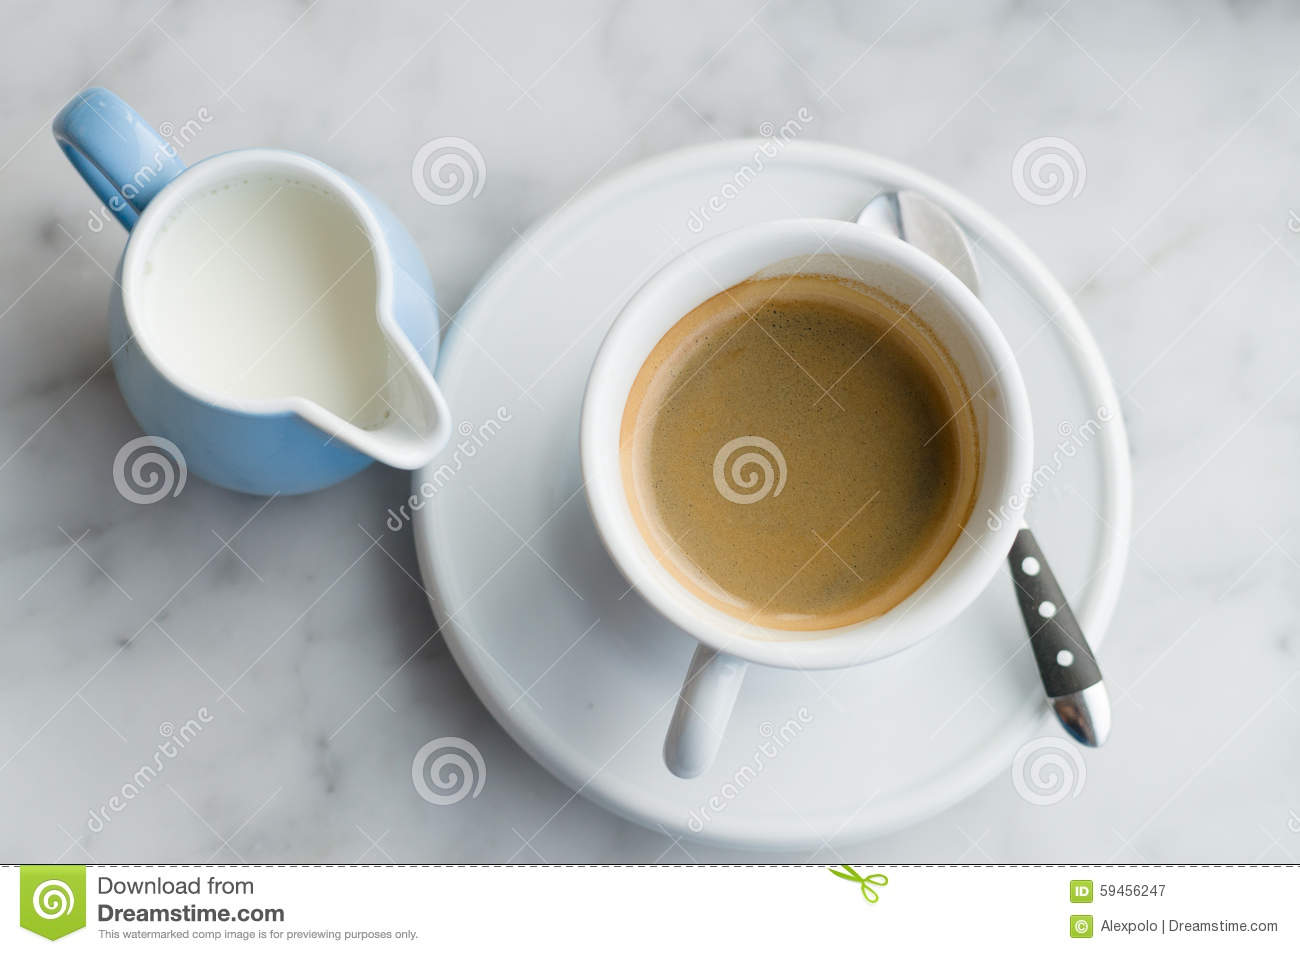 Cup of coffee and jug of milk